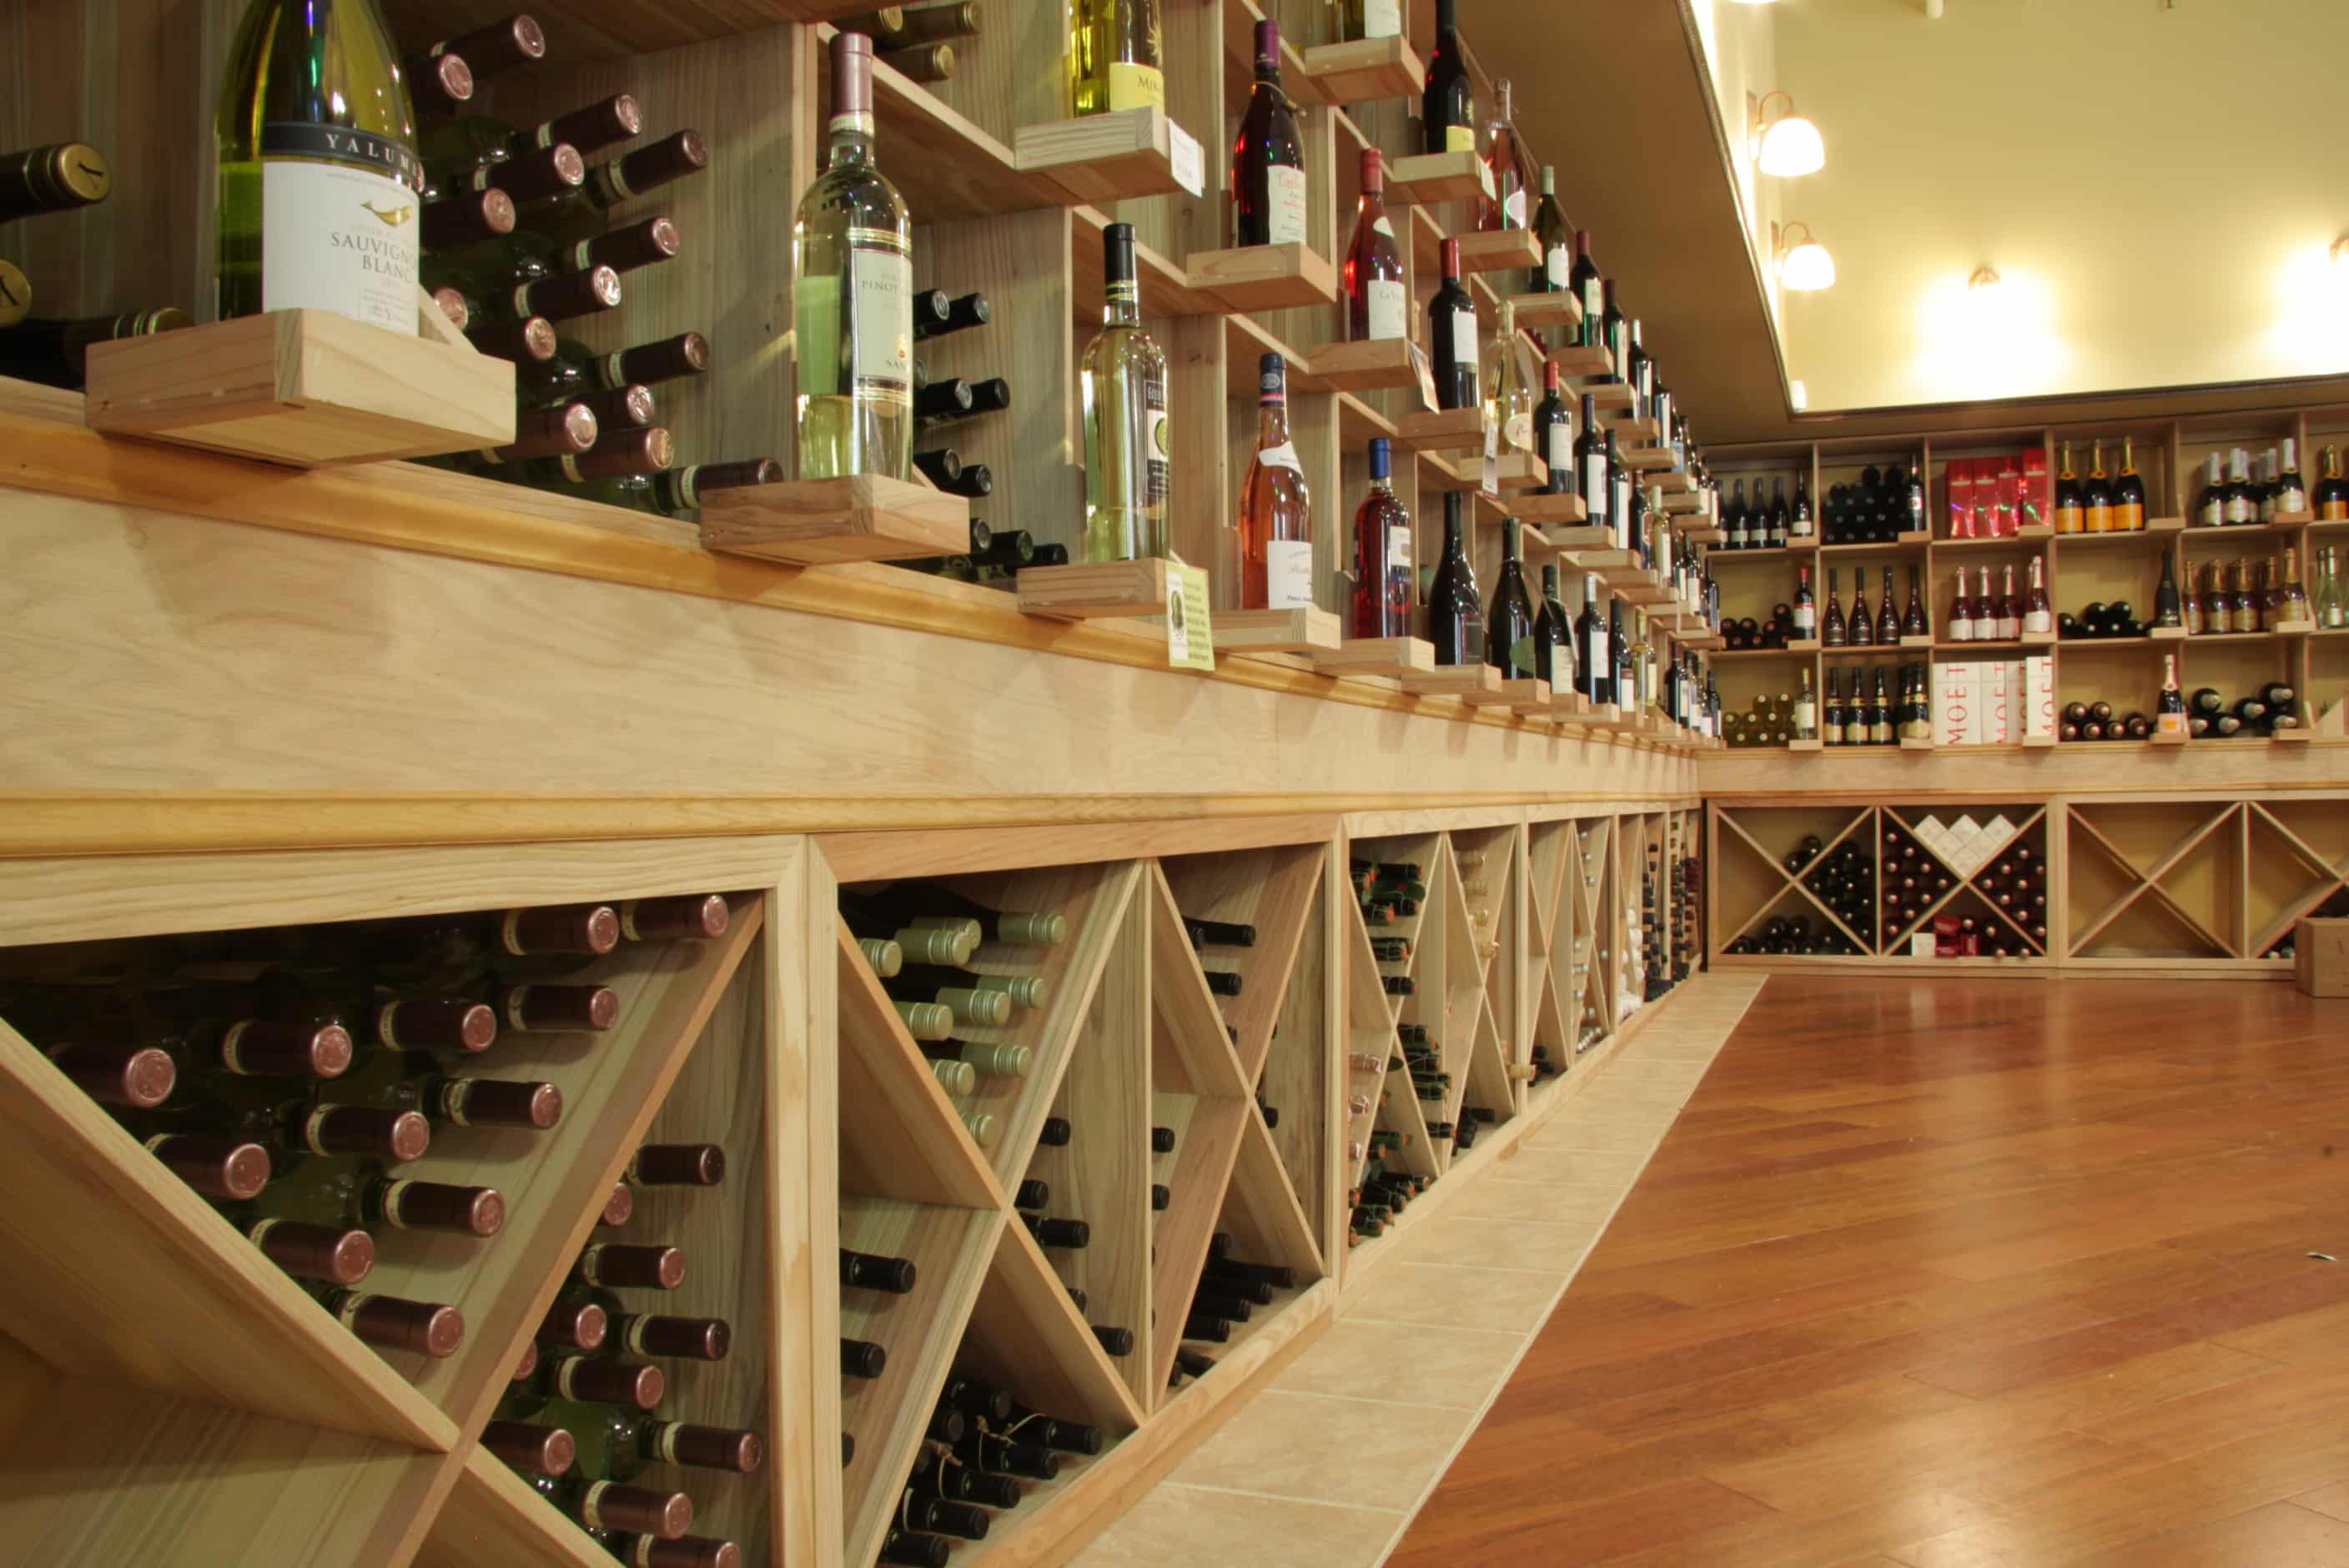 **Commercial Wine Cellars** for Hospitality and Retail PROFITABILITY